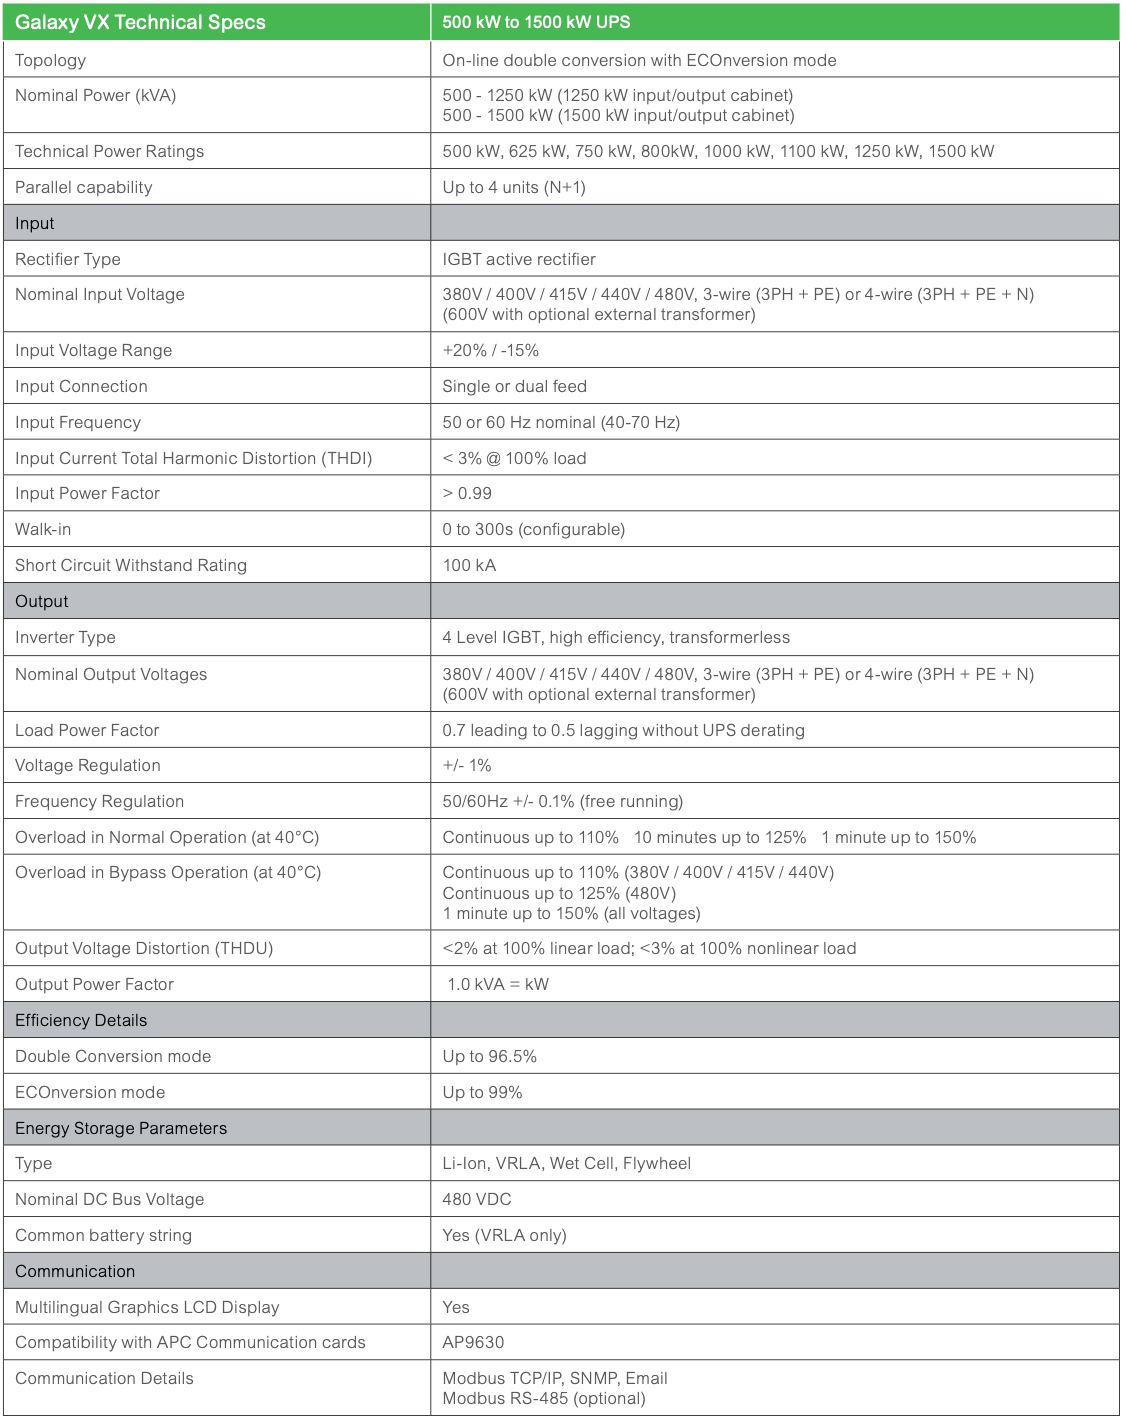 Galaxy VX Technical Specifications page 1